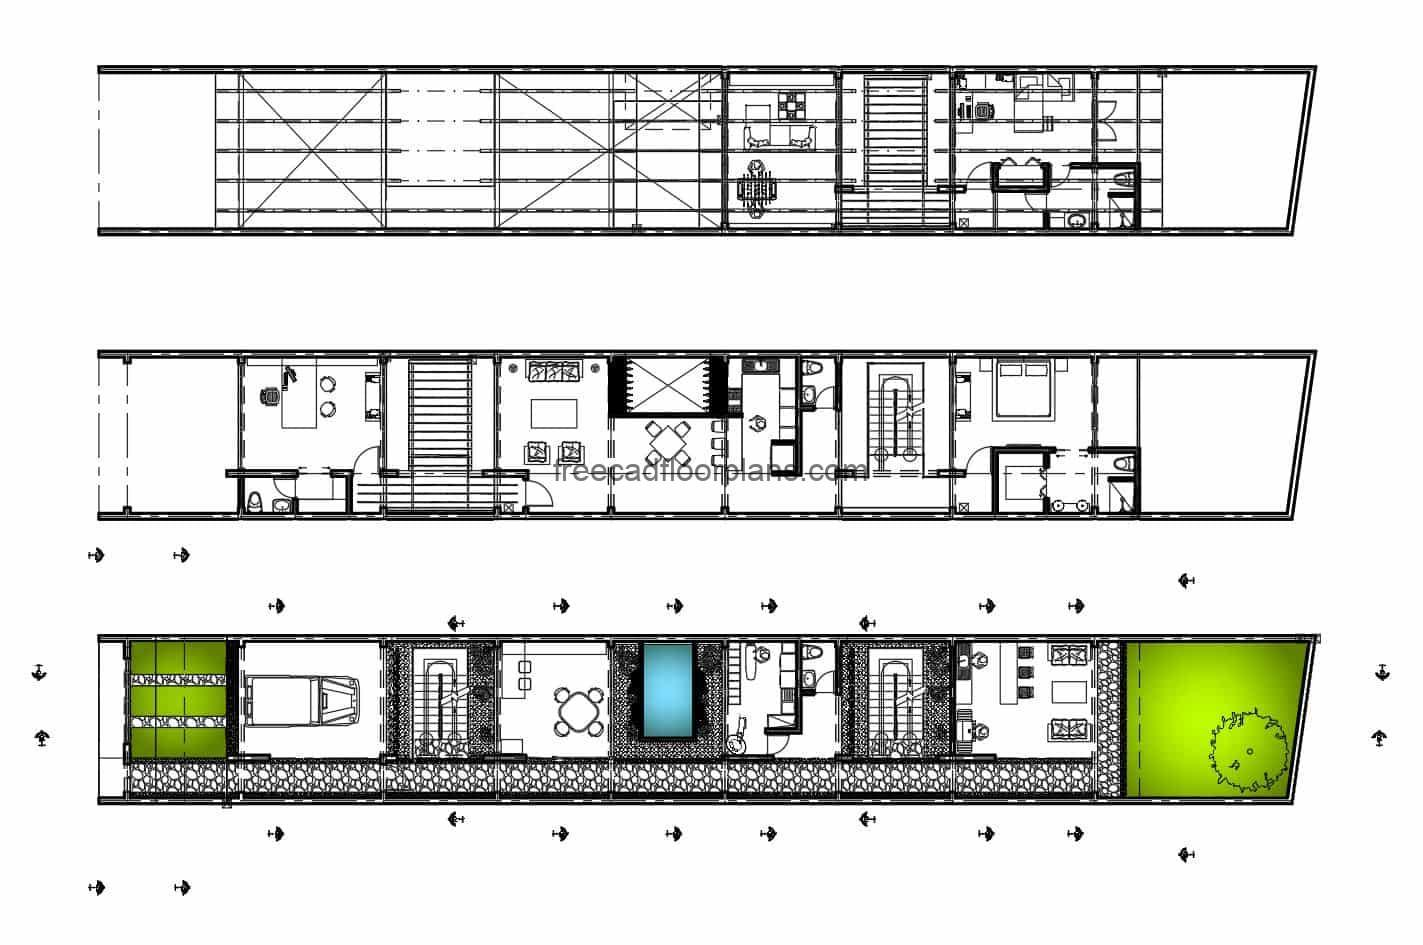 2D plans in Autocad DWG format of narrow and elongated three-level residence, architectural plans, dimensioning, details of materials and structure, sections, elevations.